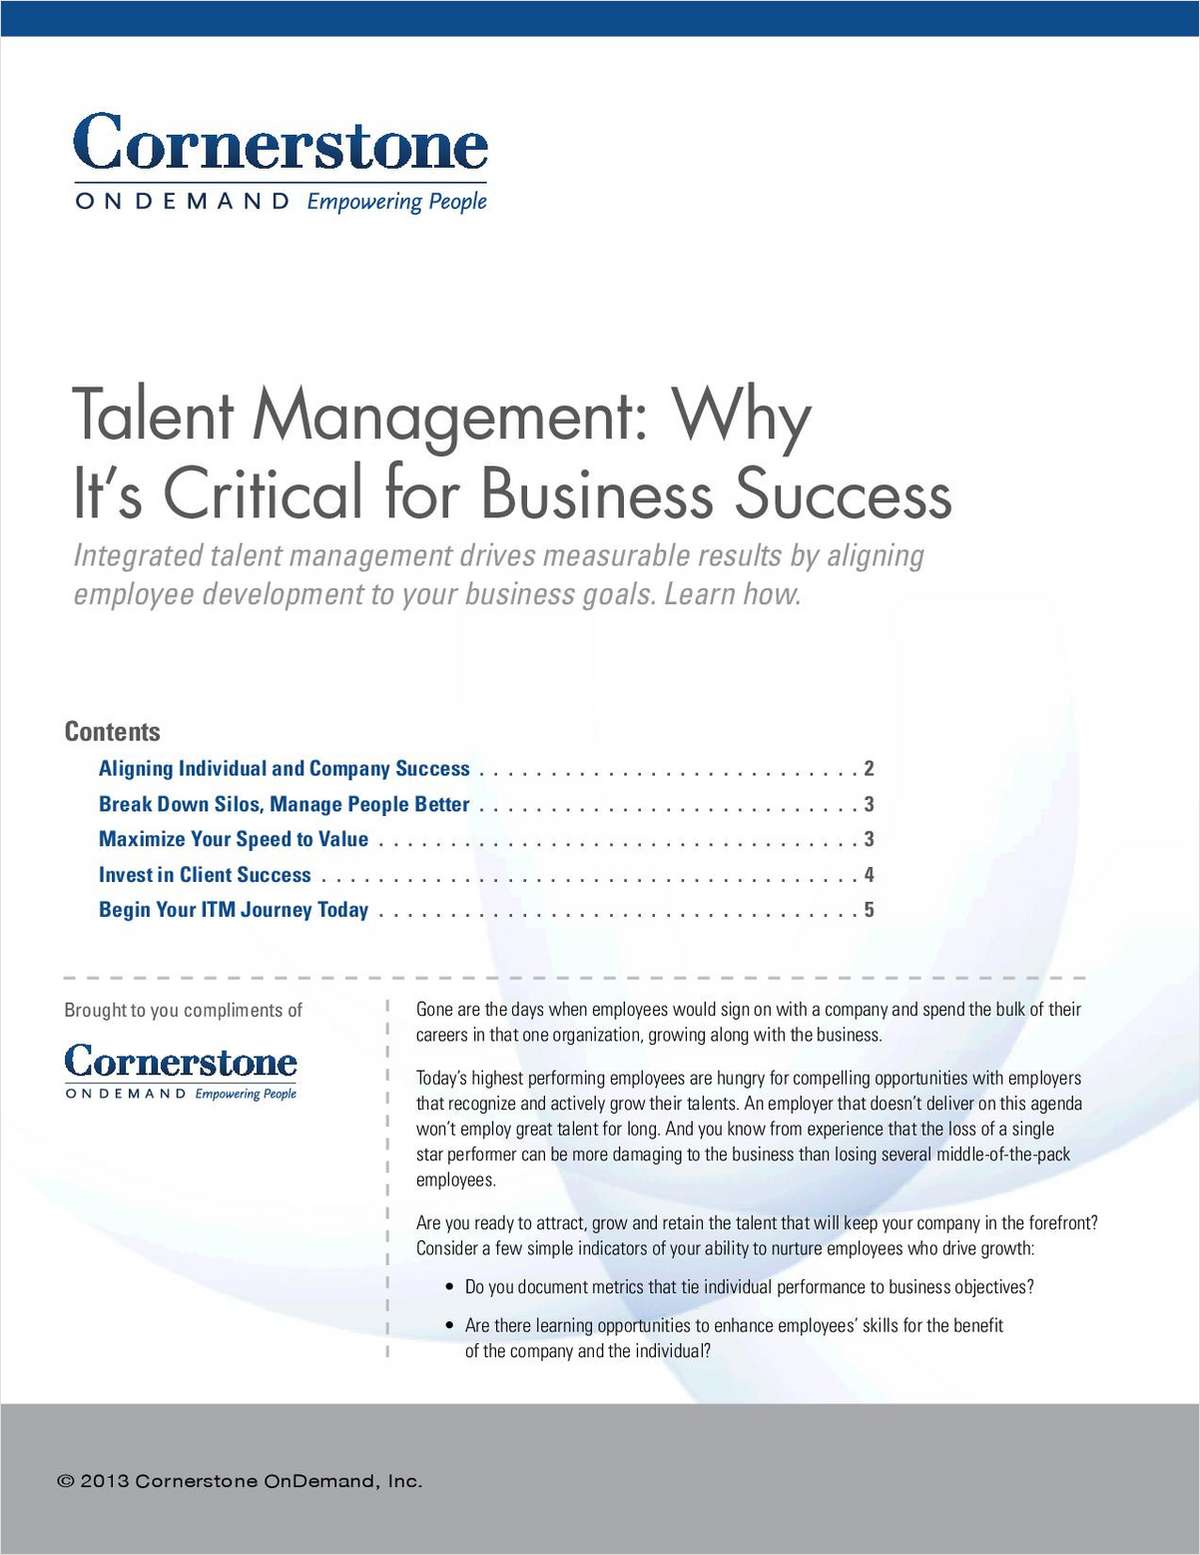 Talent Management: Why It's Critical for Business Success